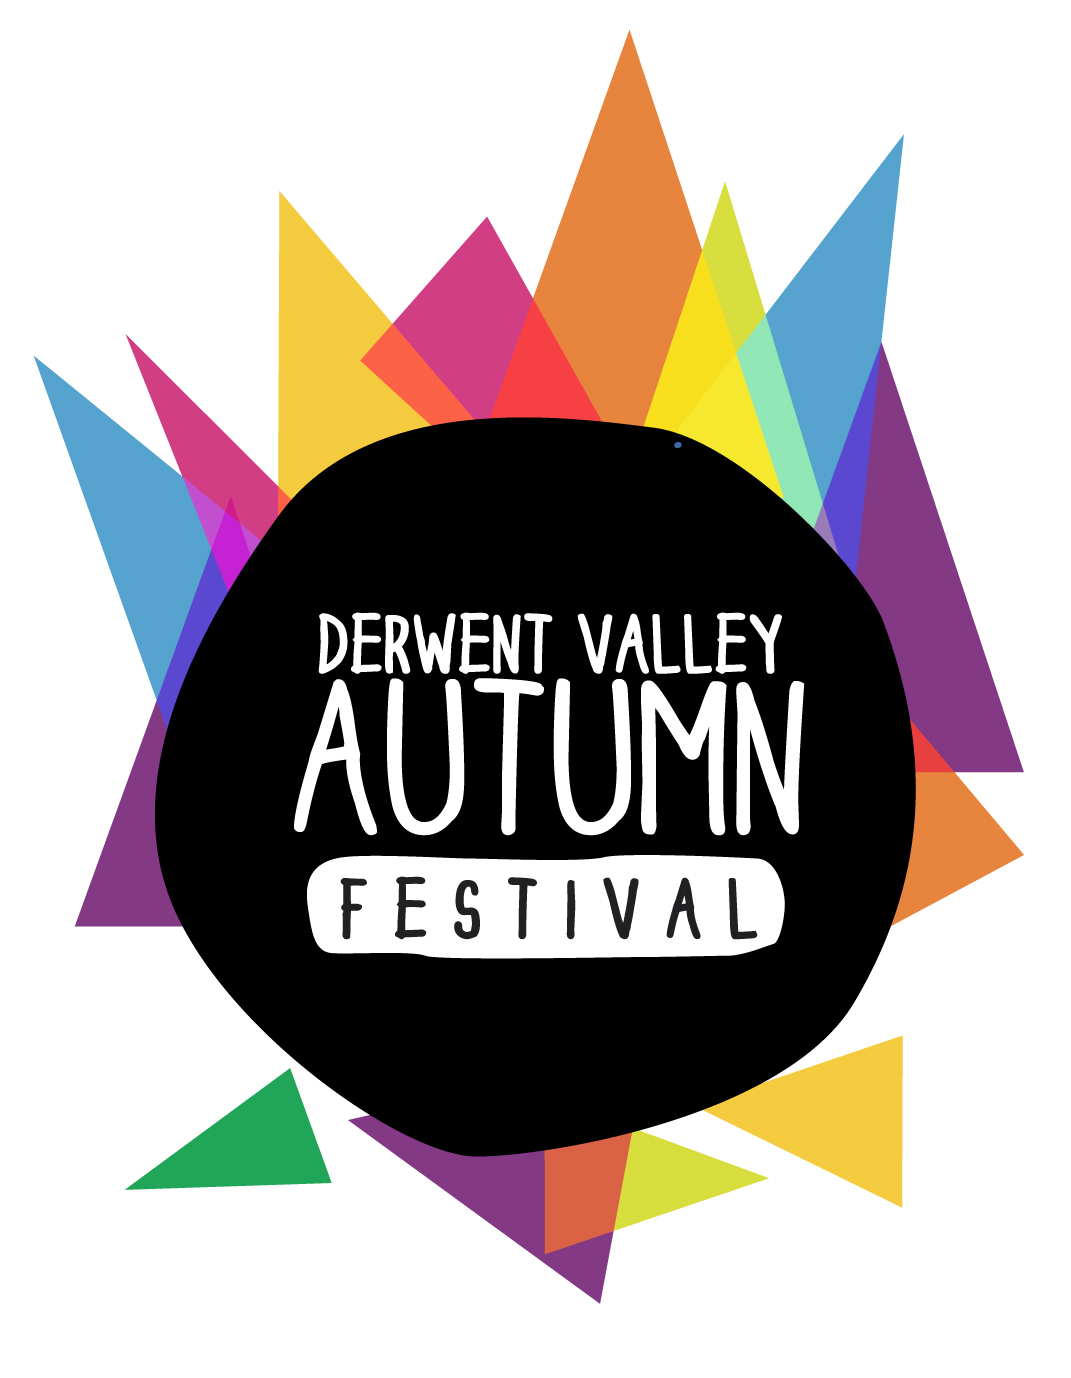 Derwent Valley Autumn Festival Logo